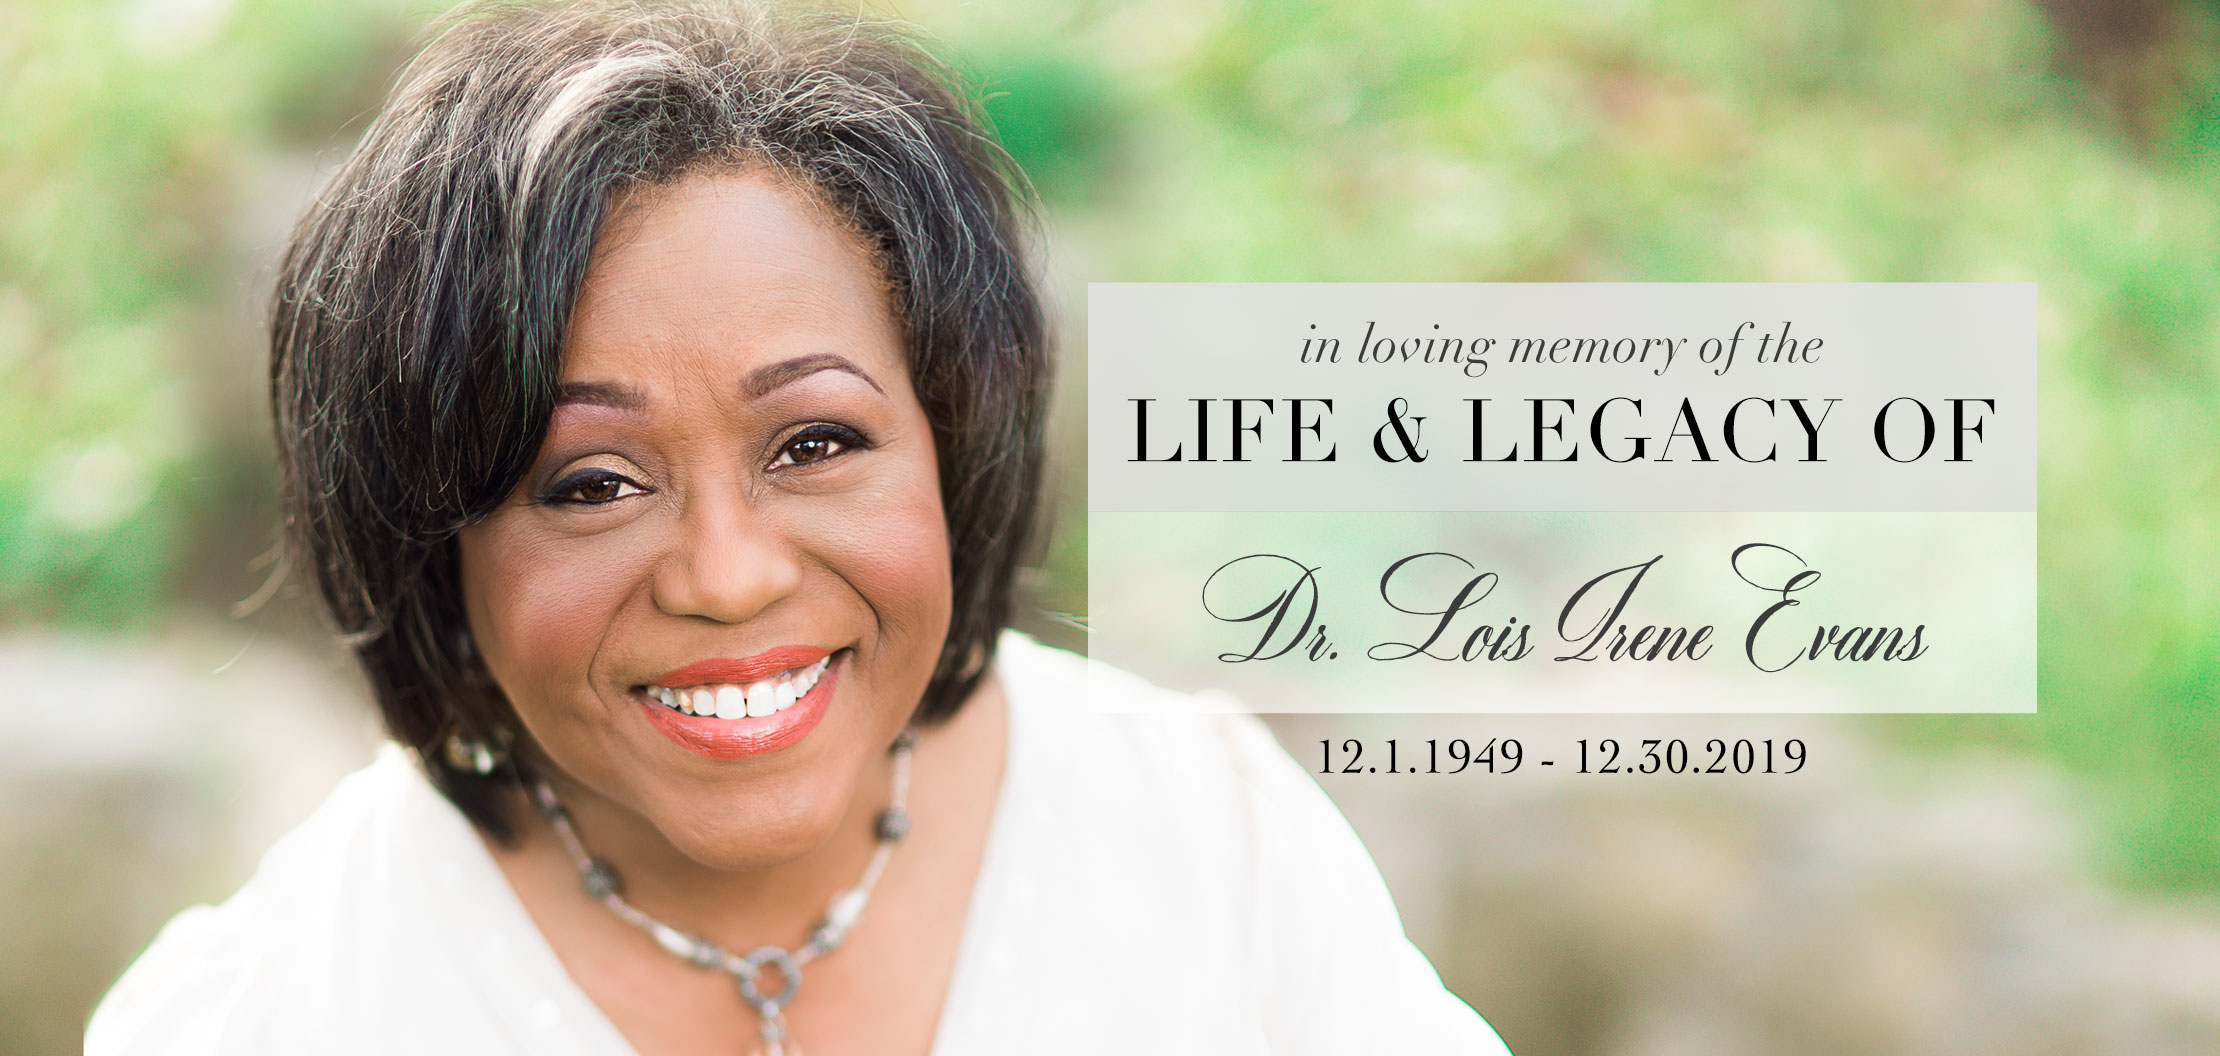 Dr. Lois Irene Evans – A Celebration of Life and Legacy